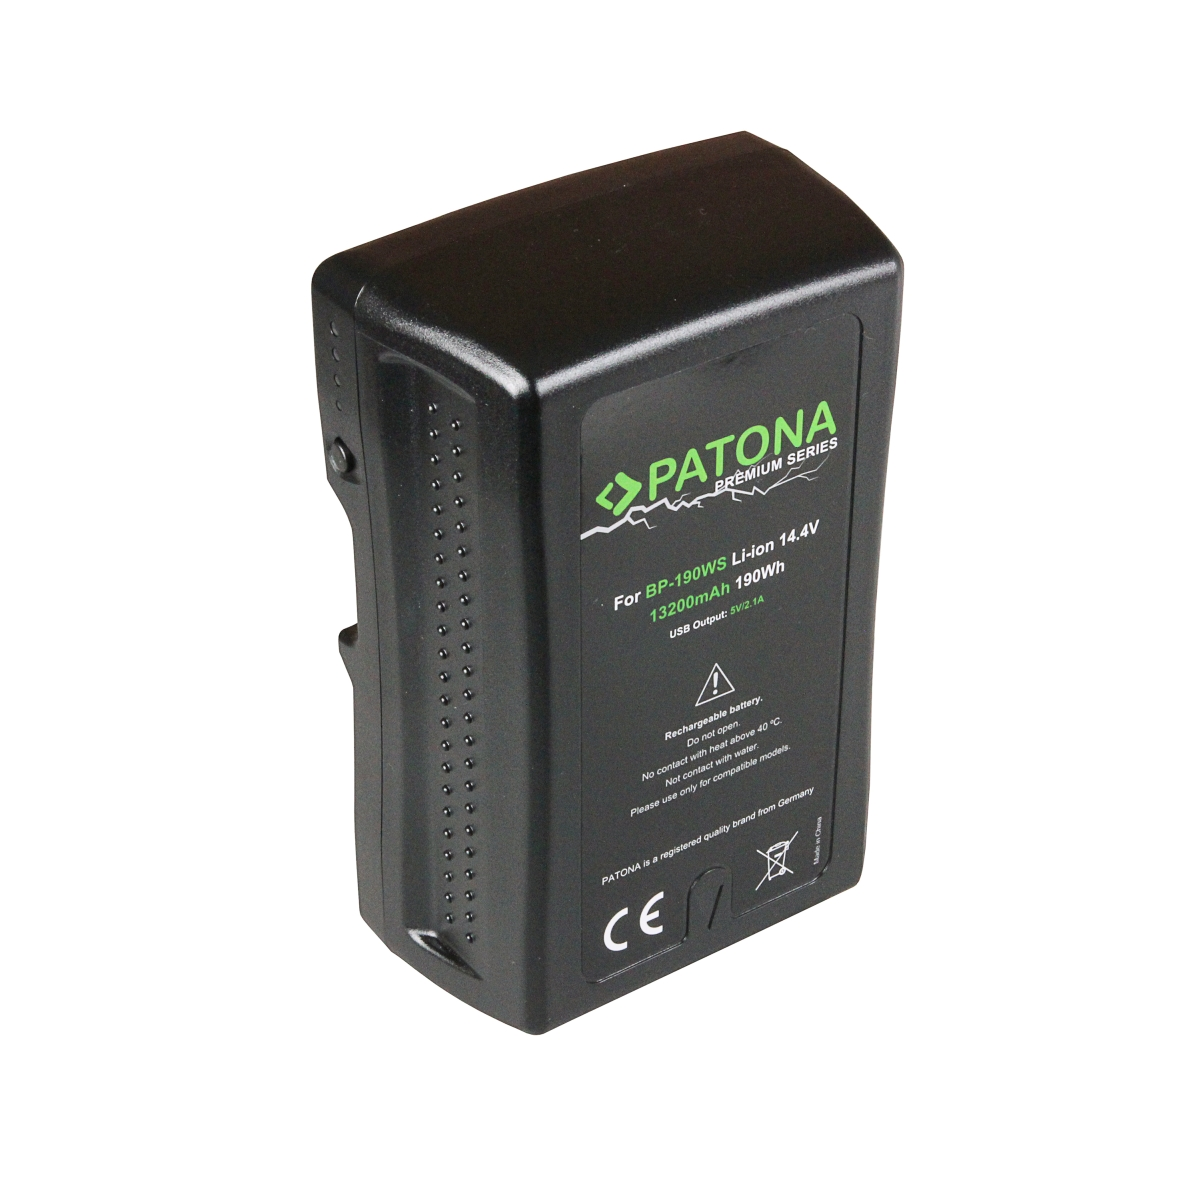 V-Mount Battery 190Wh / 14,4V / 13200mAh